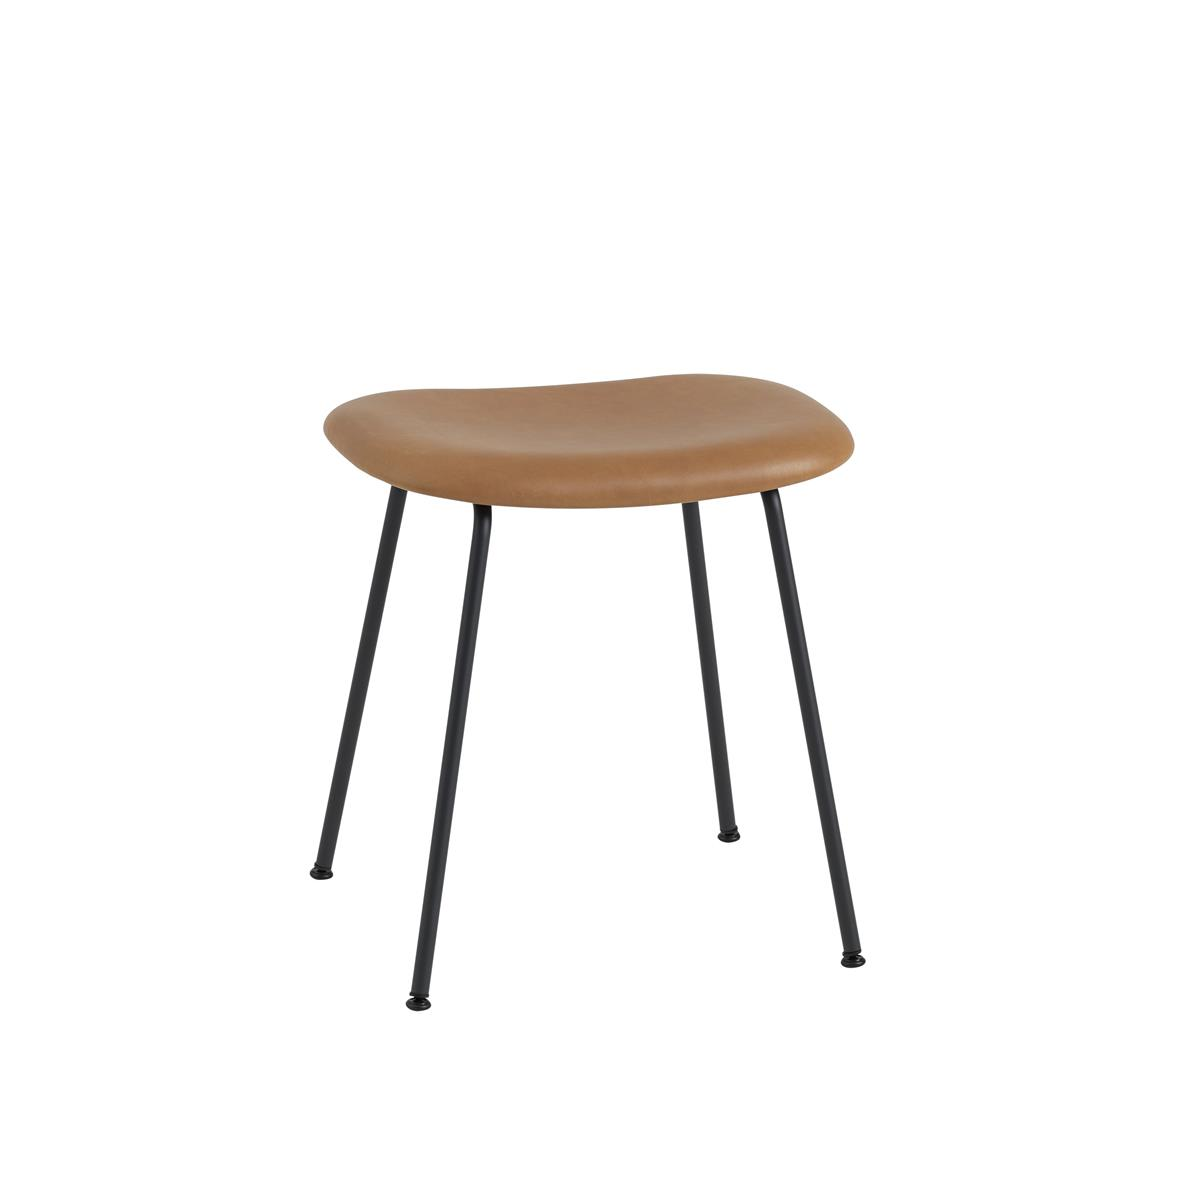 Fiber Stool Tube Base H45 - Cognac Silk Leather & Black